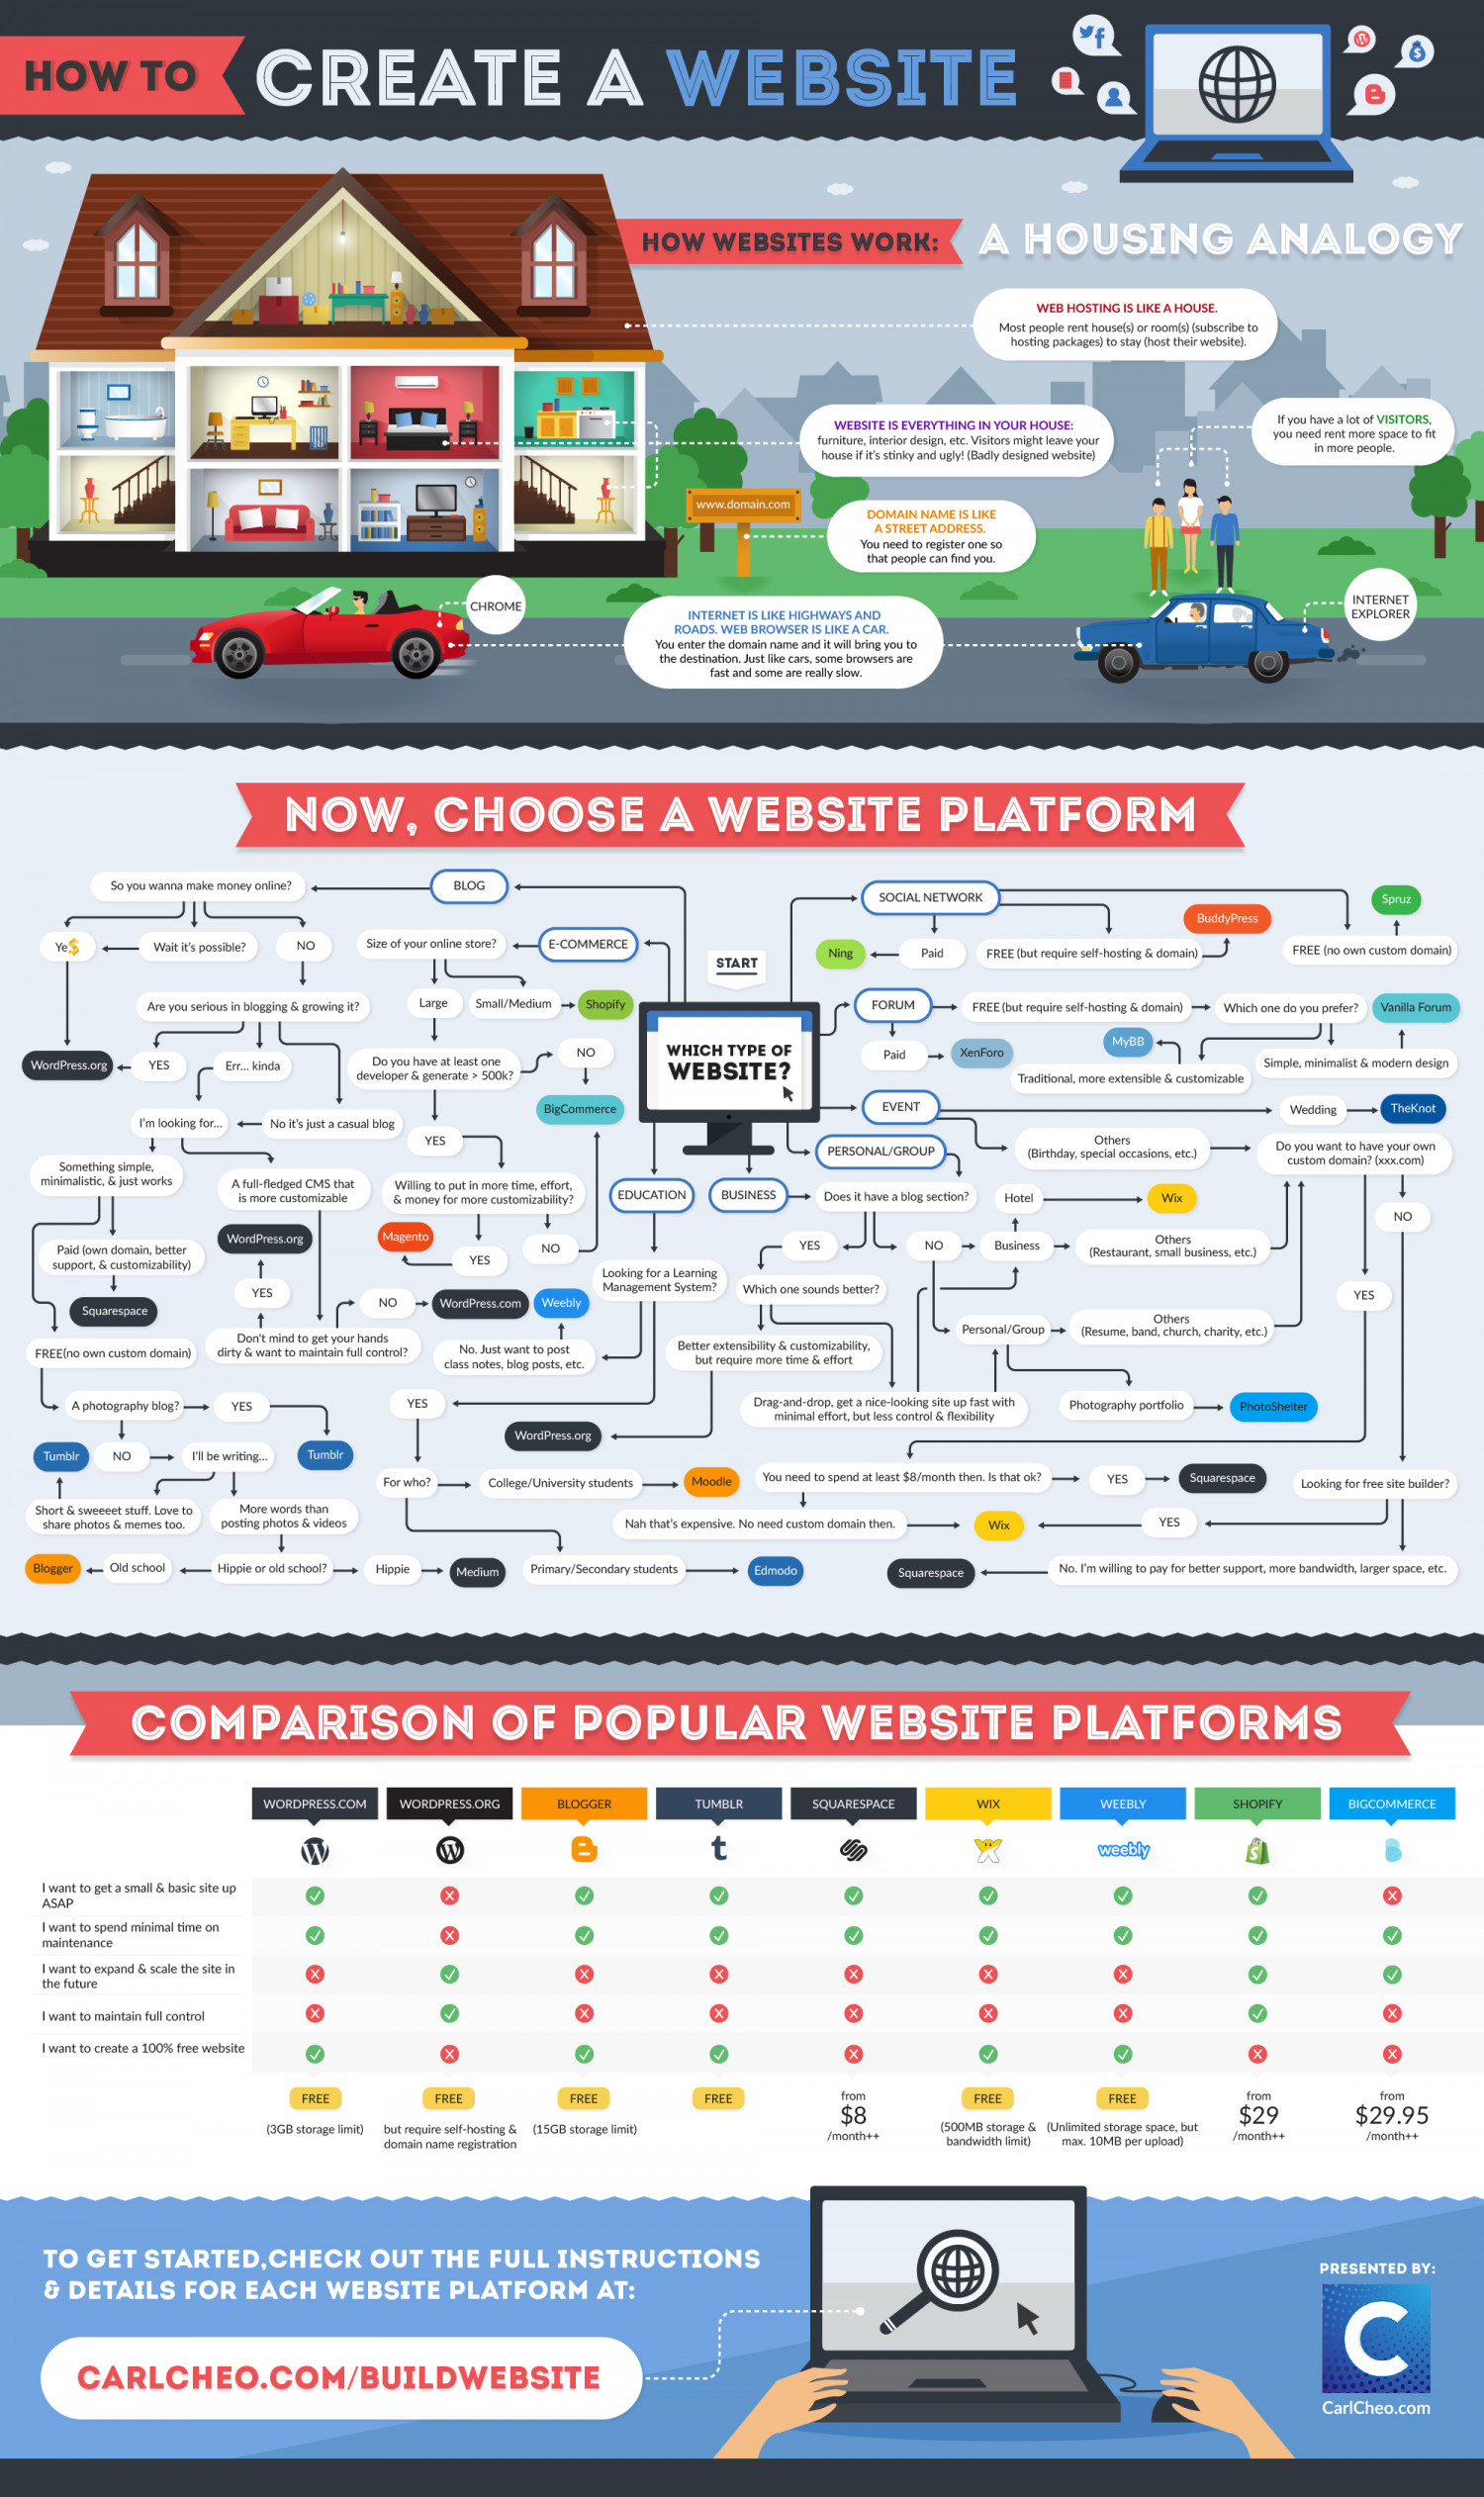 How To Create A Website: The Definitive Beginner's Guide [Infographic] Infographic